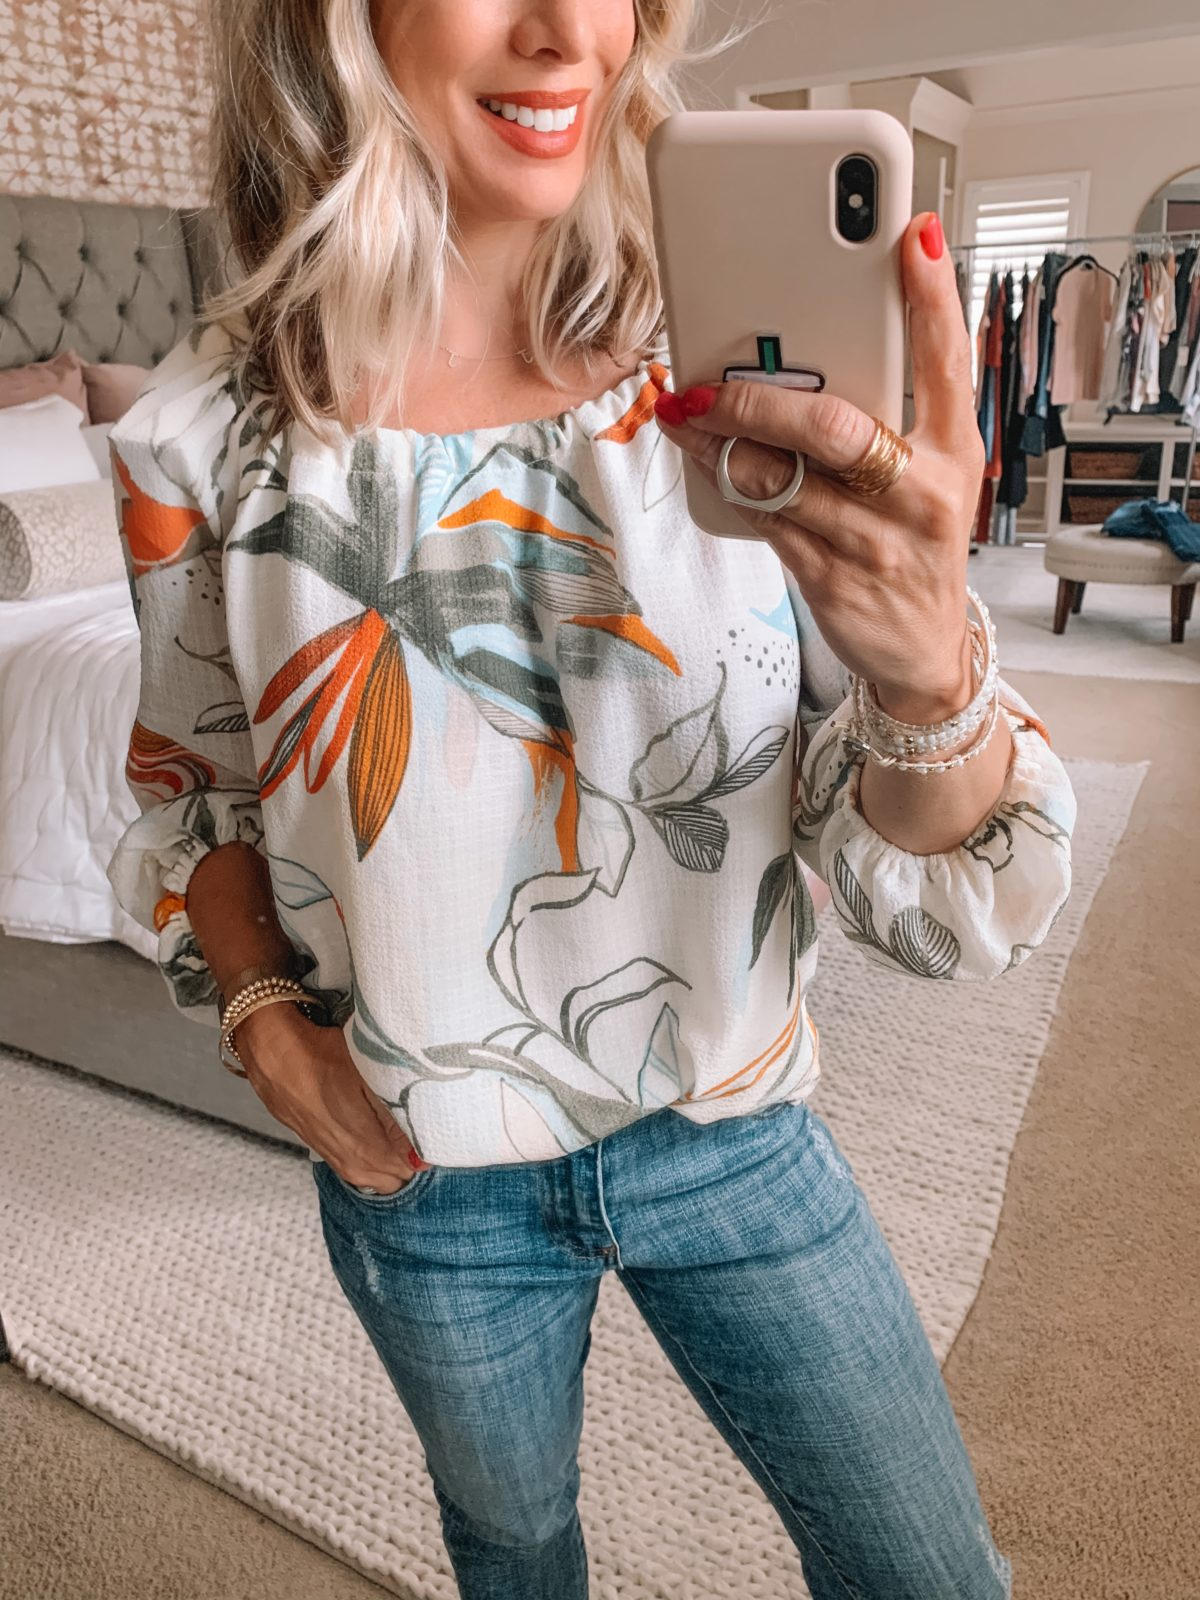 Dressing Room Finds Nordstrom and Target, Floral Boho Top, Jeans